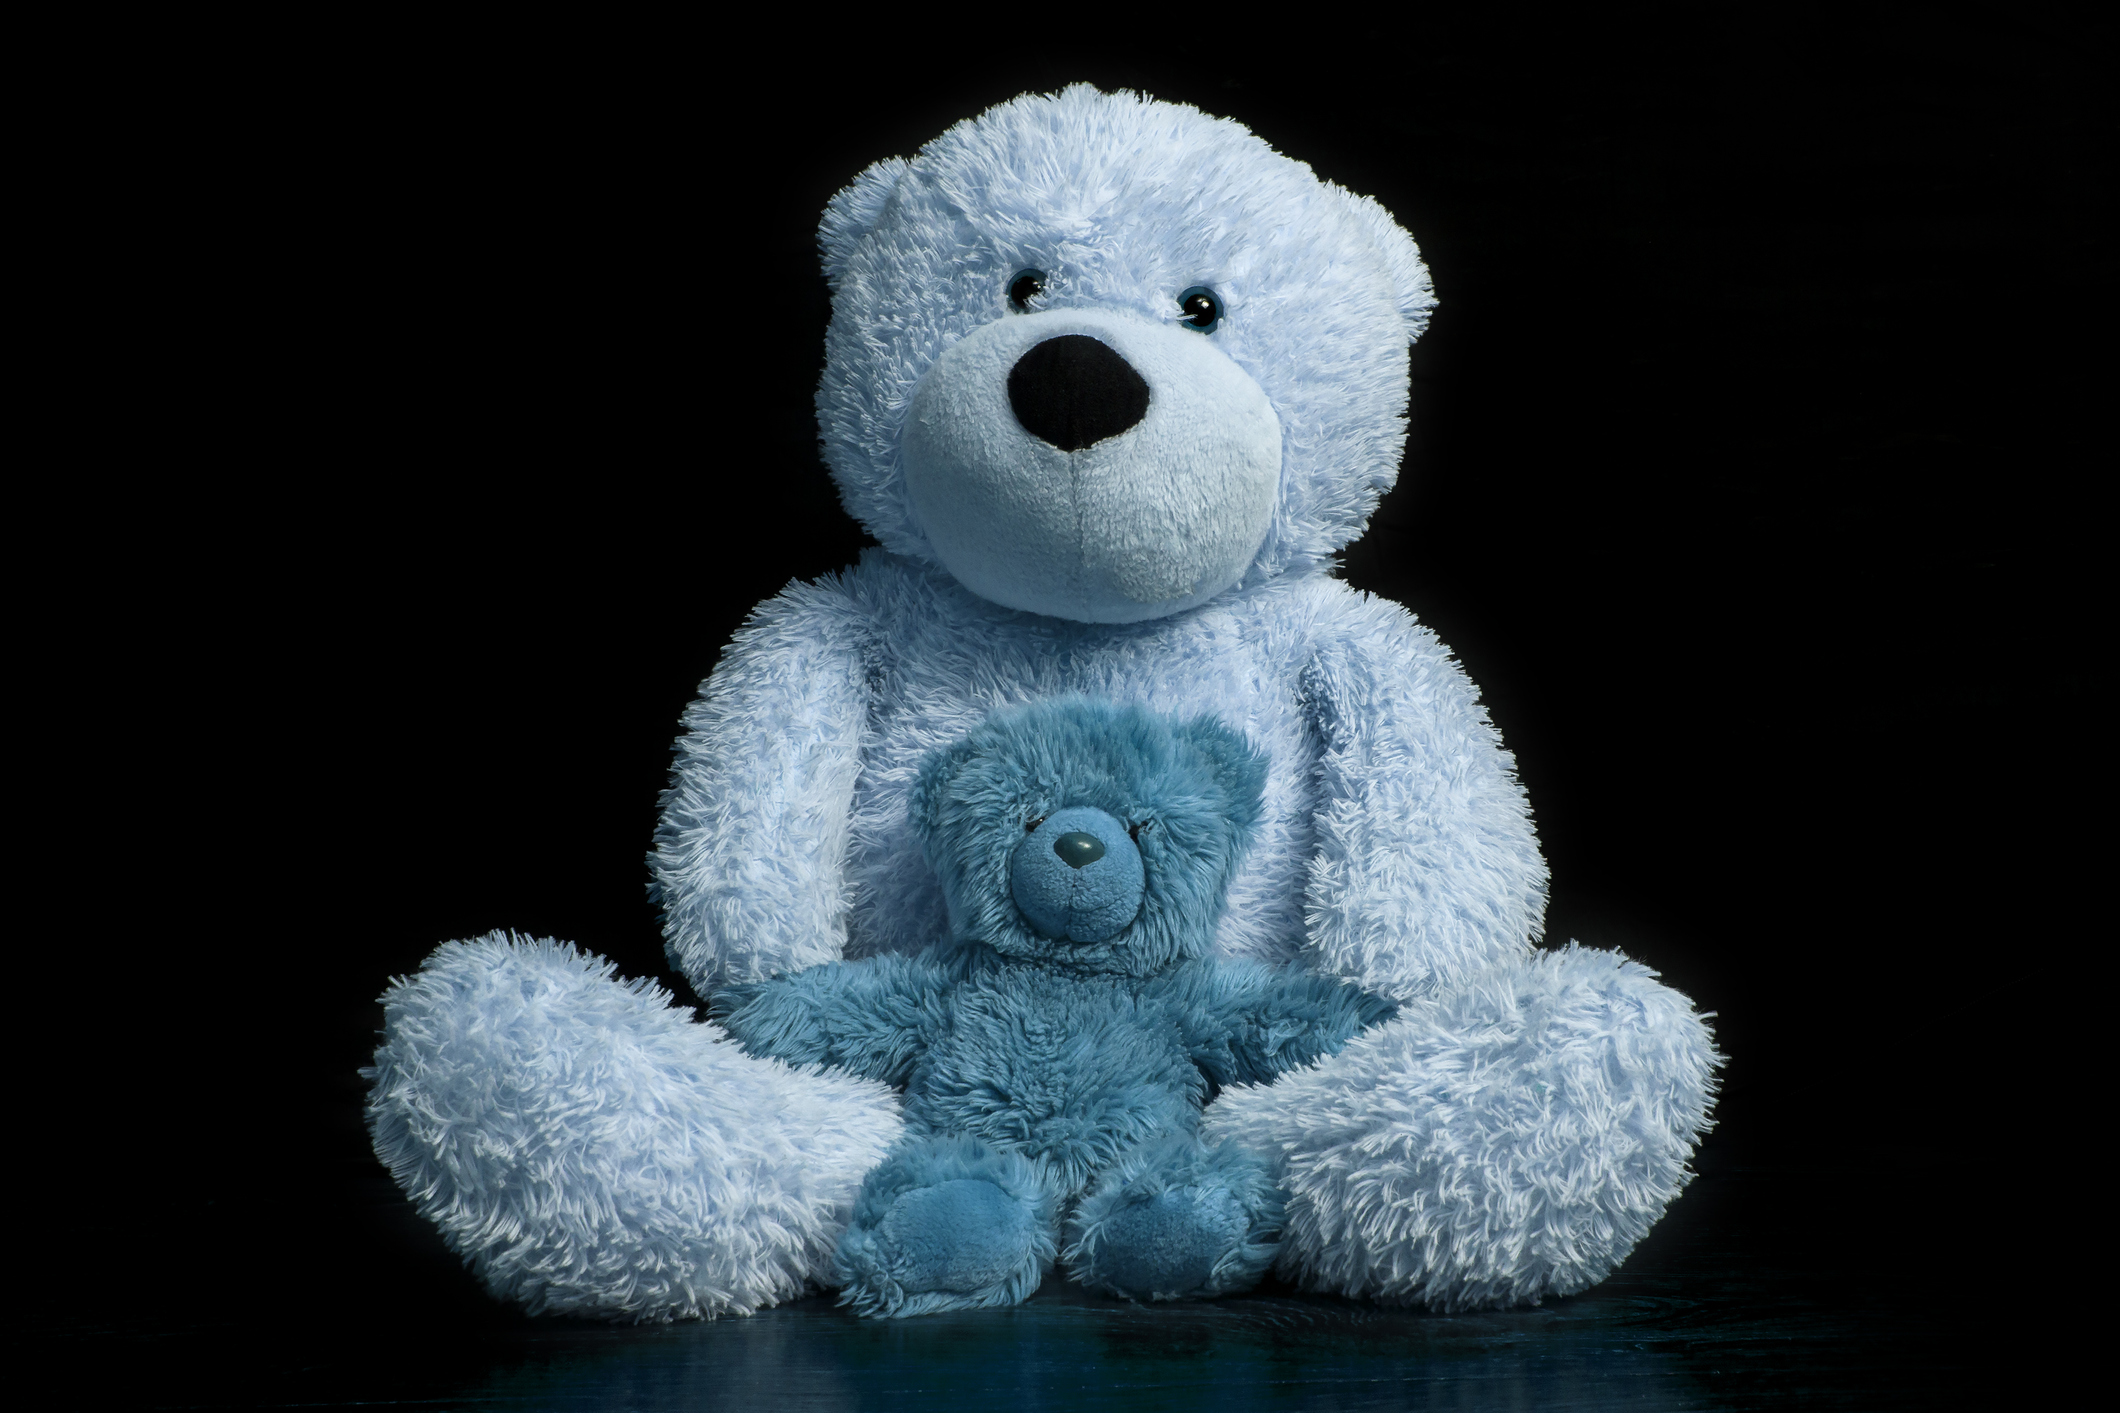 AWAW ::A War Against Wednesdays - blue (nod to Pooh) bearGoodbye Christopher Robit